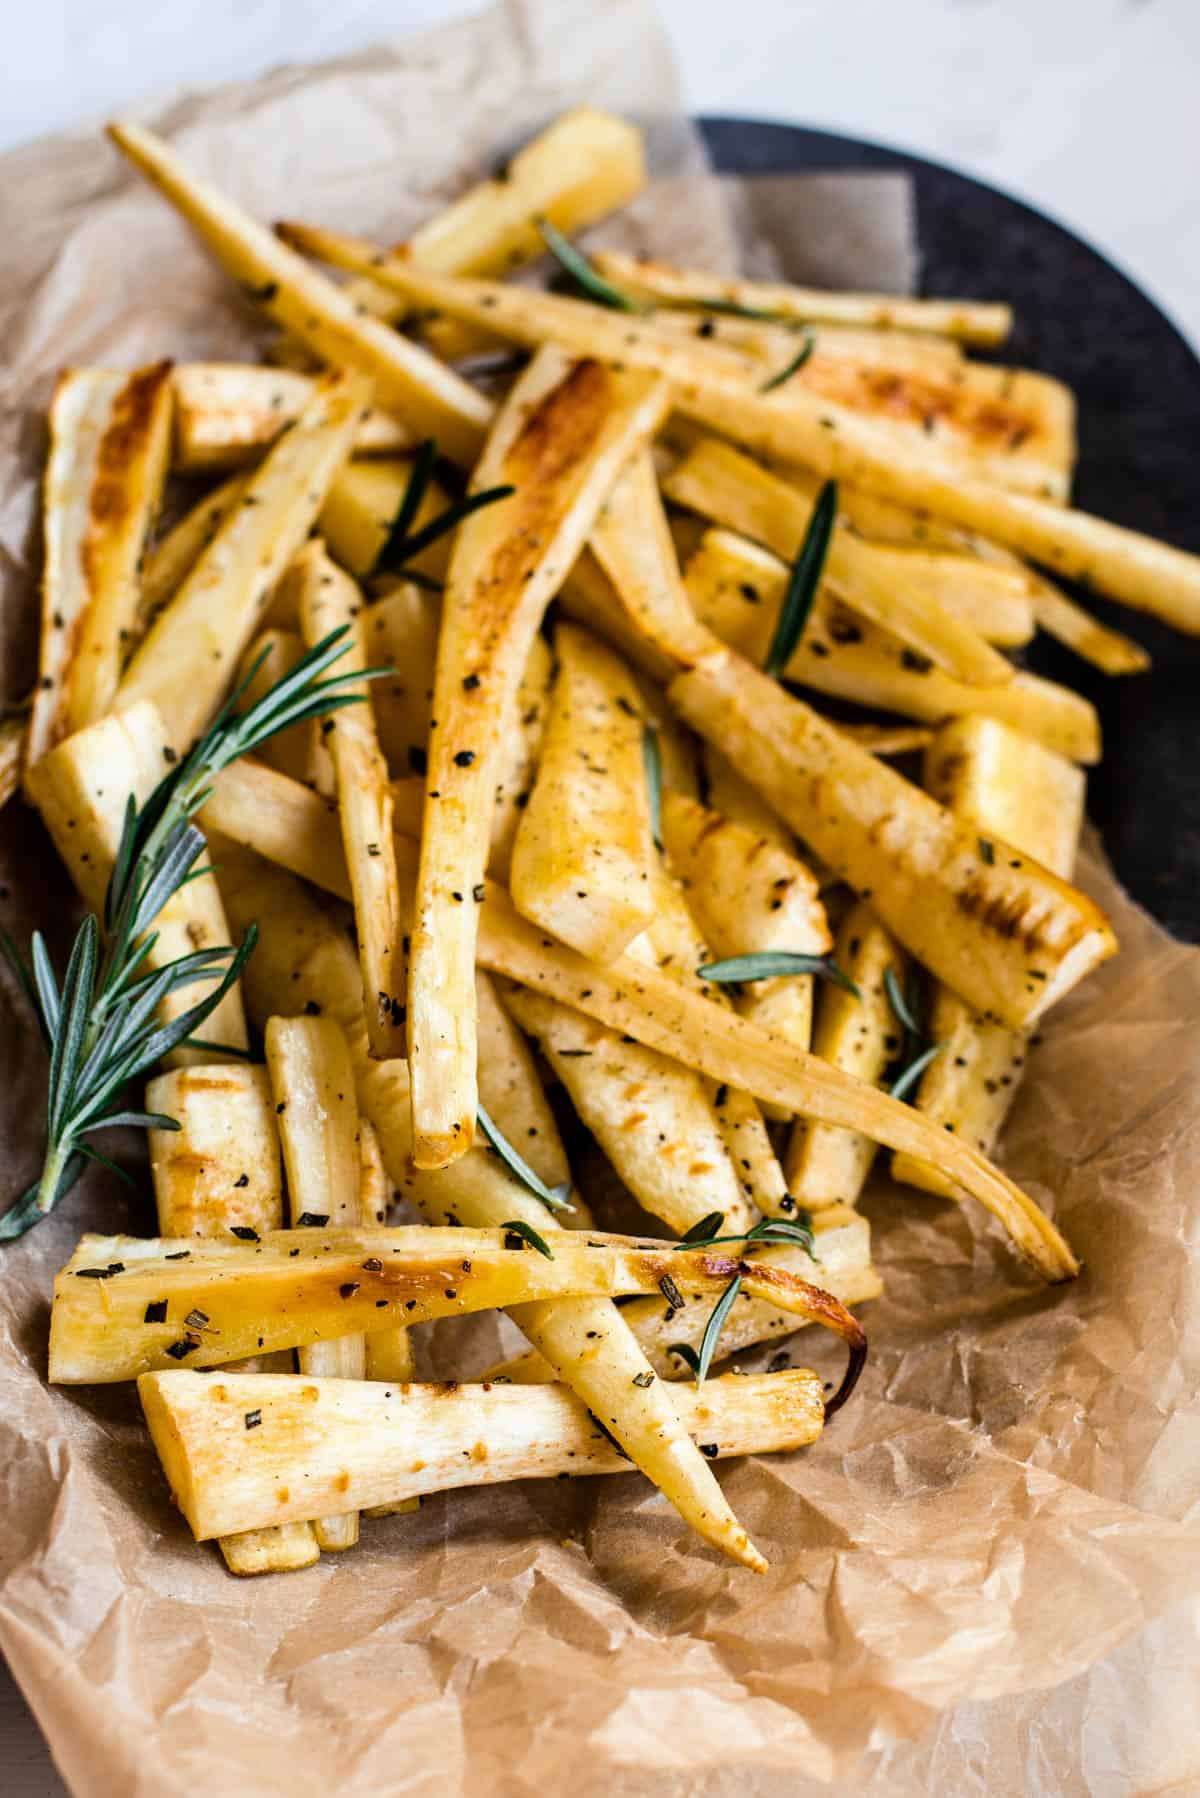 baked parsnips in a serving dish with a sprig of parsley